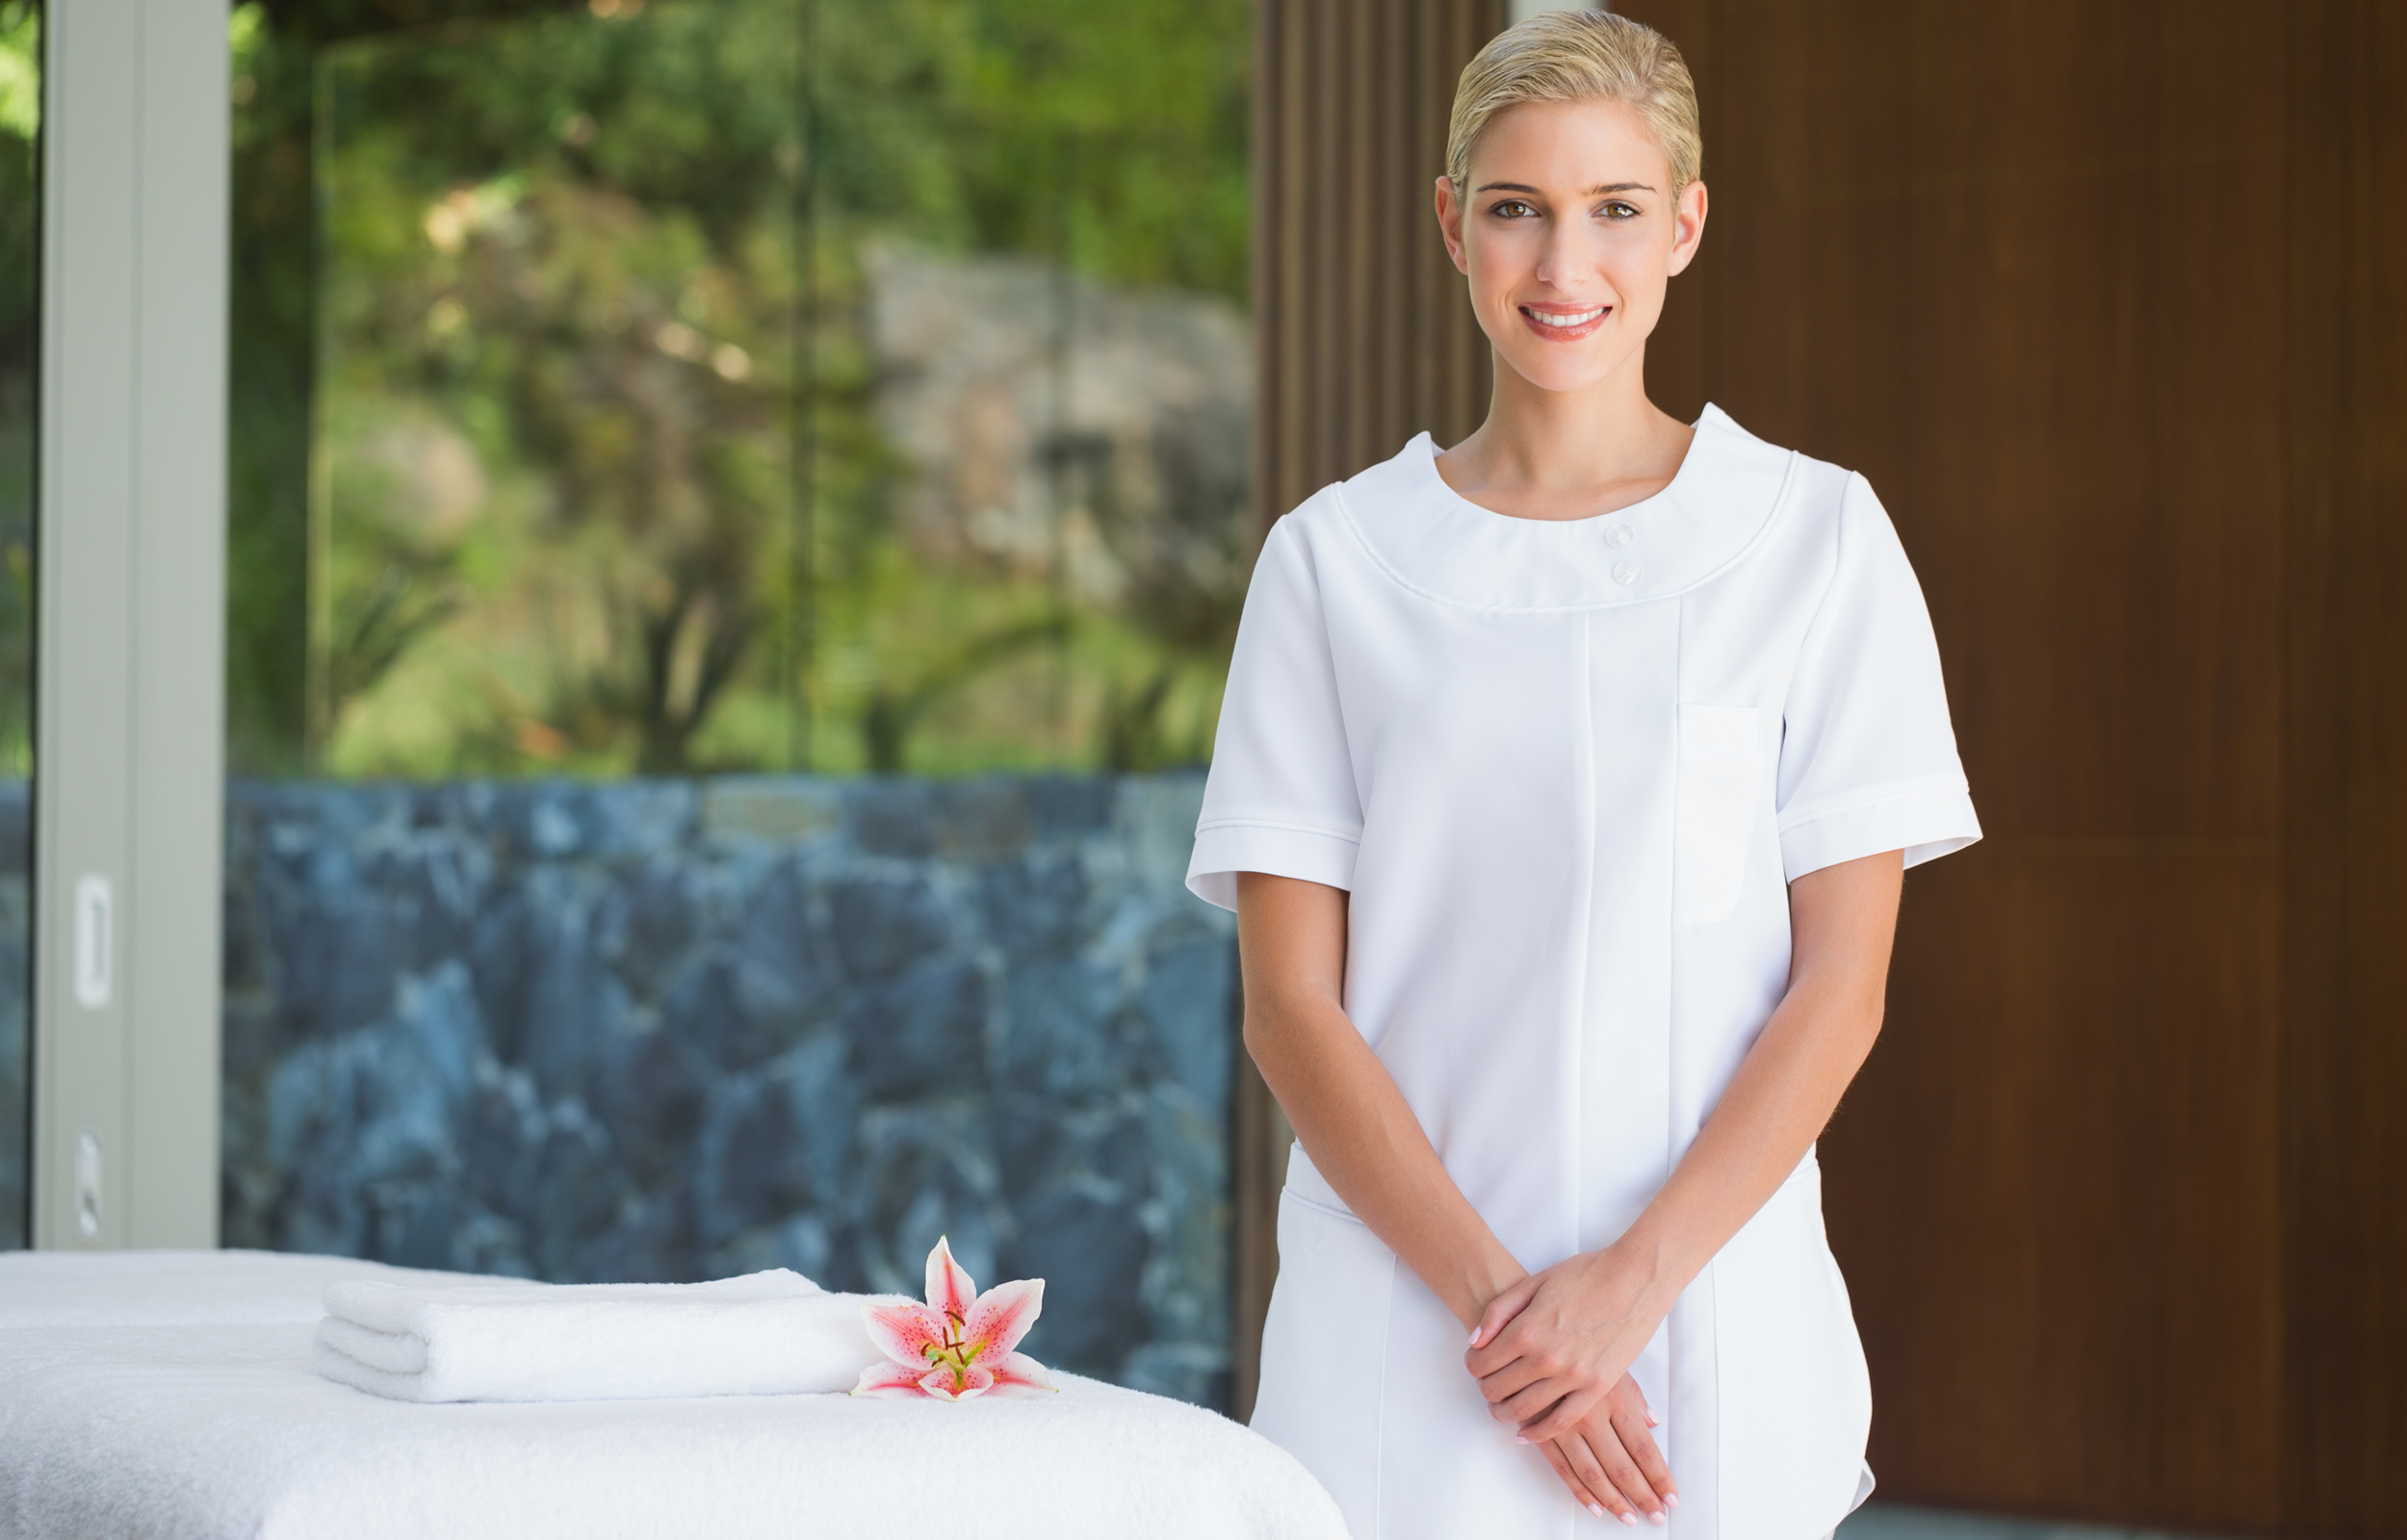 Young adult woman with tied back blonde hair stands next to a spa bed, wearing a white spa uniform, holding her hands in front of her as she wears a fake smile, covering up her therapist burnout.